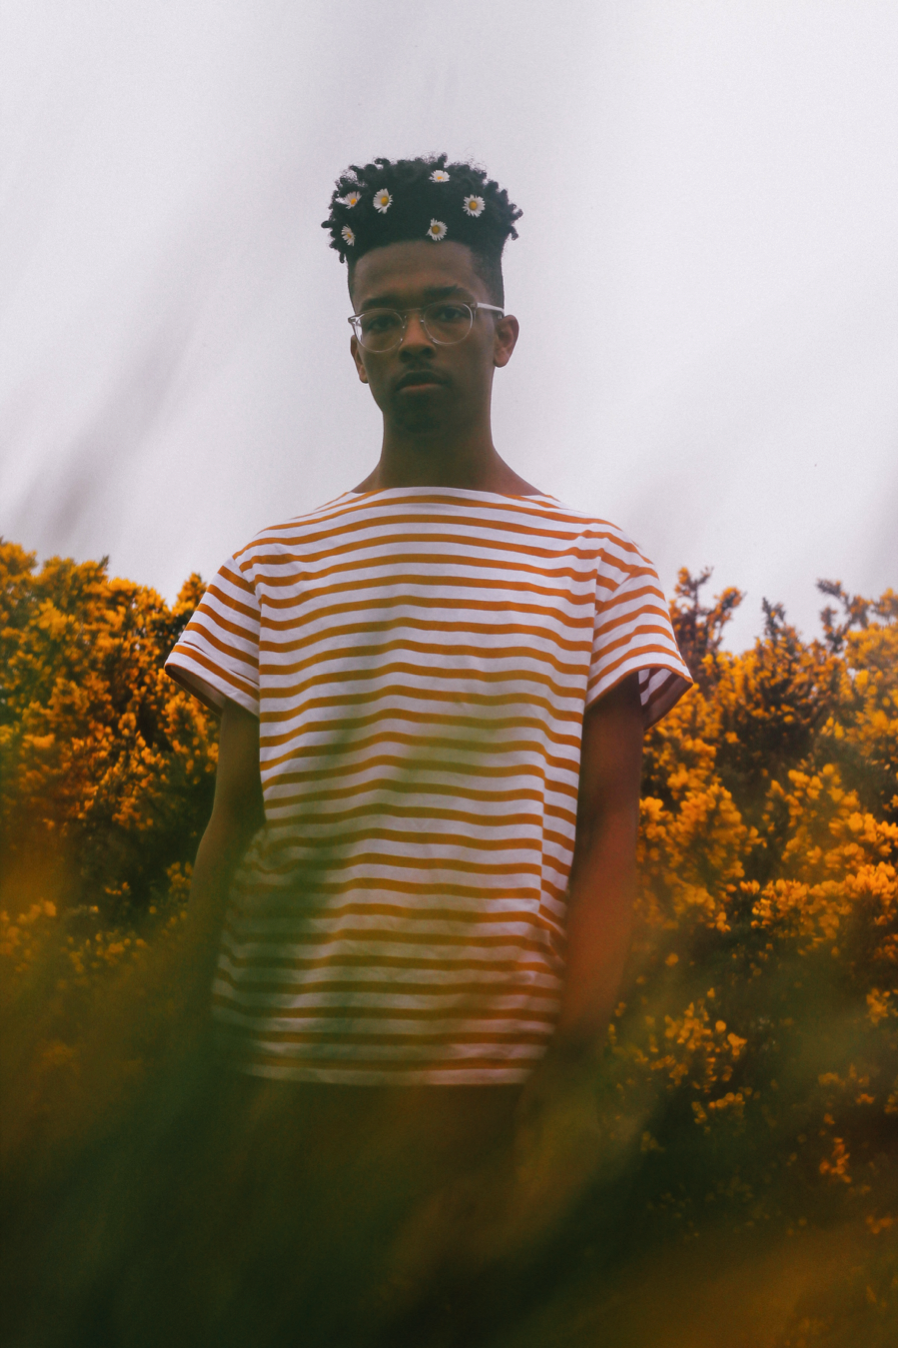 Parsons' Myles Loftin Breaks Down HOODED, His Stereotype-Defying Project